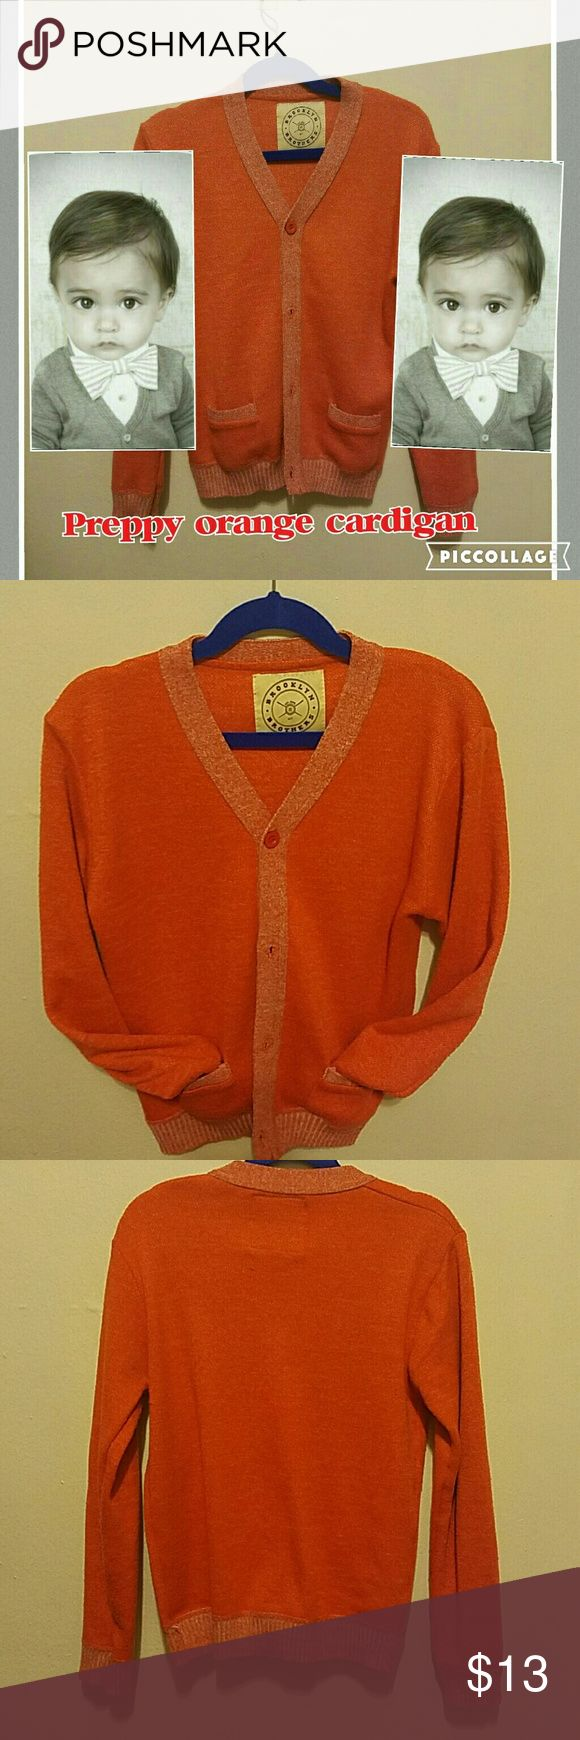 Orange cardigan for boys Very stylish and cute a preppy look to make any boy adorable with 2 functional pockets in front long sleeves v neck and  very soft material.preloved in good condition. Jackets & Coats